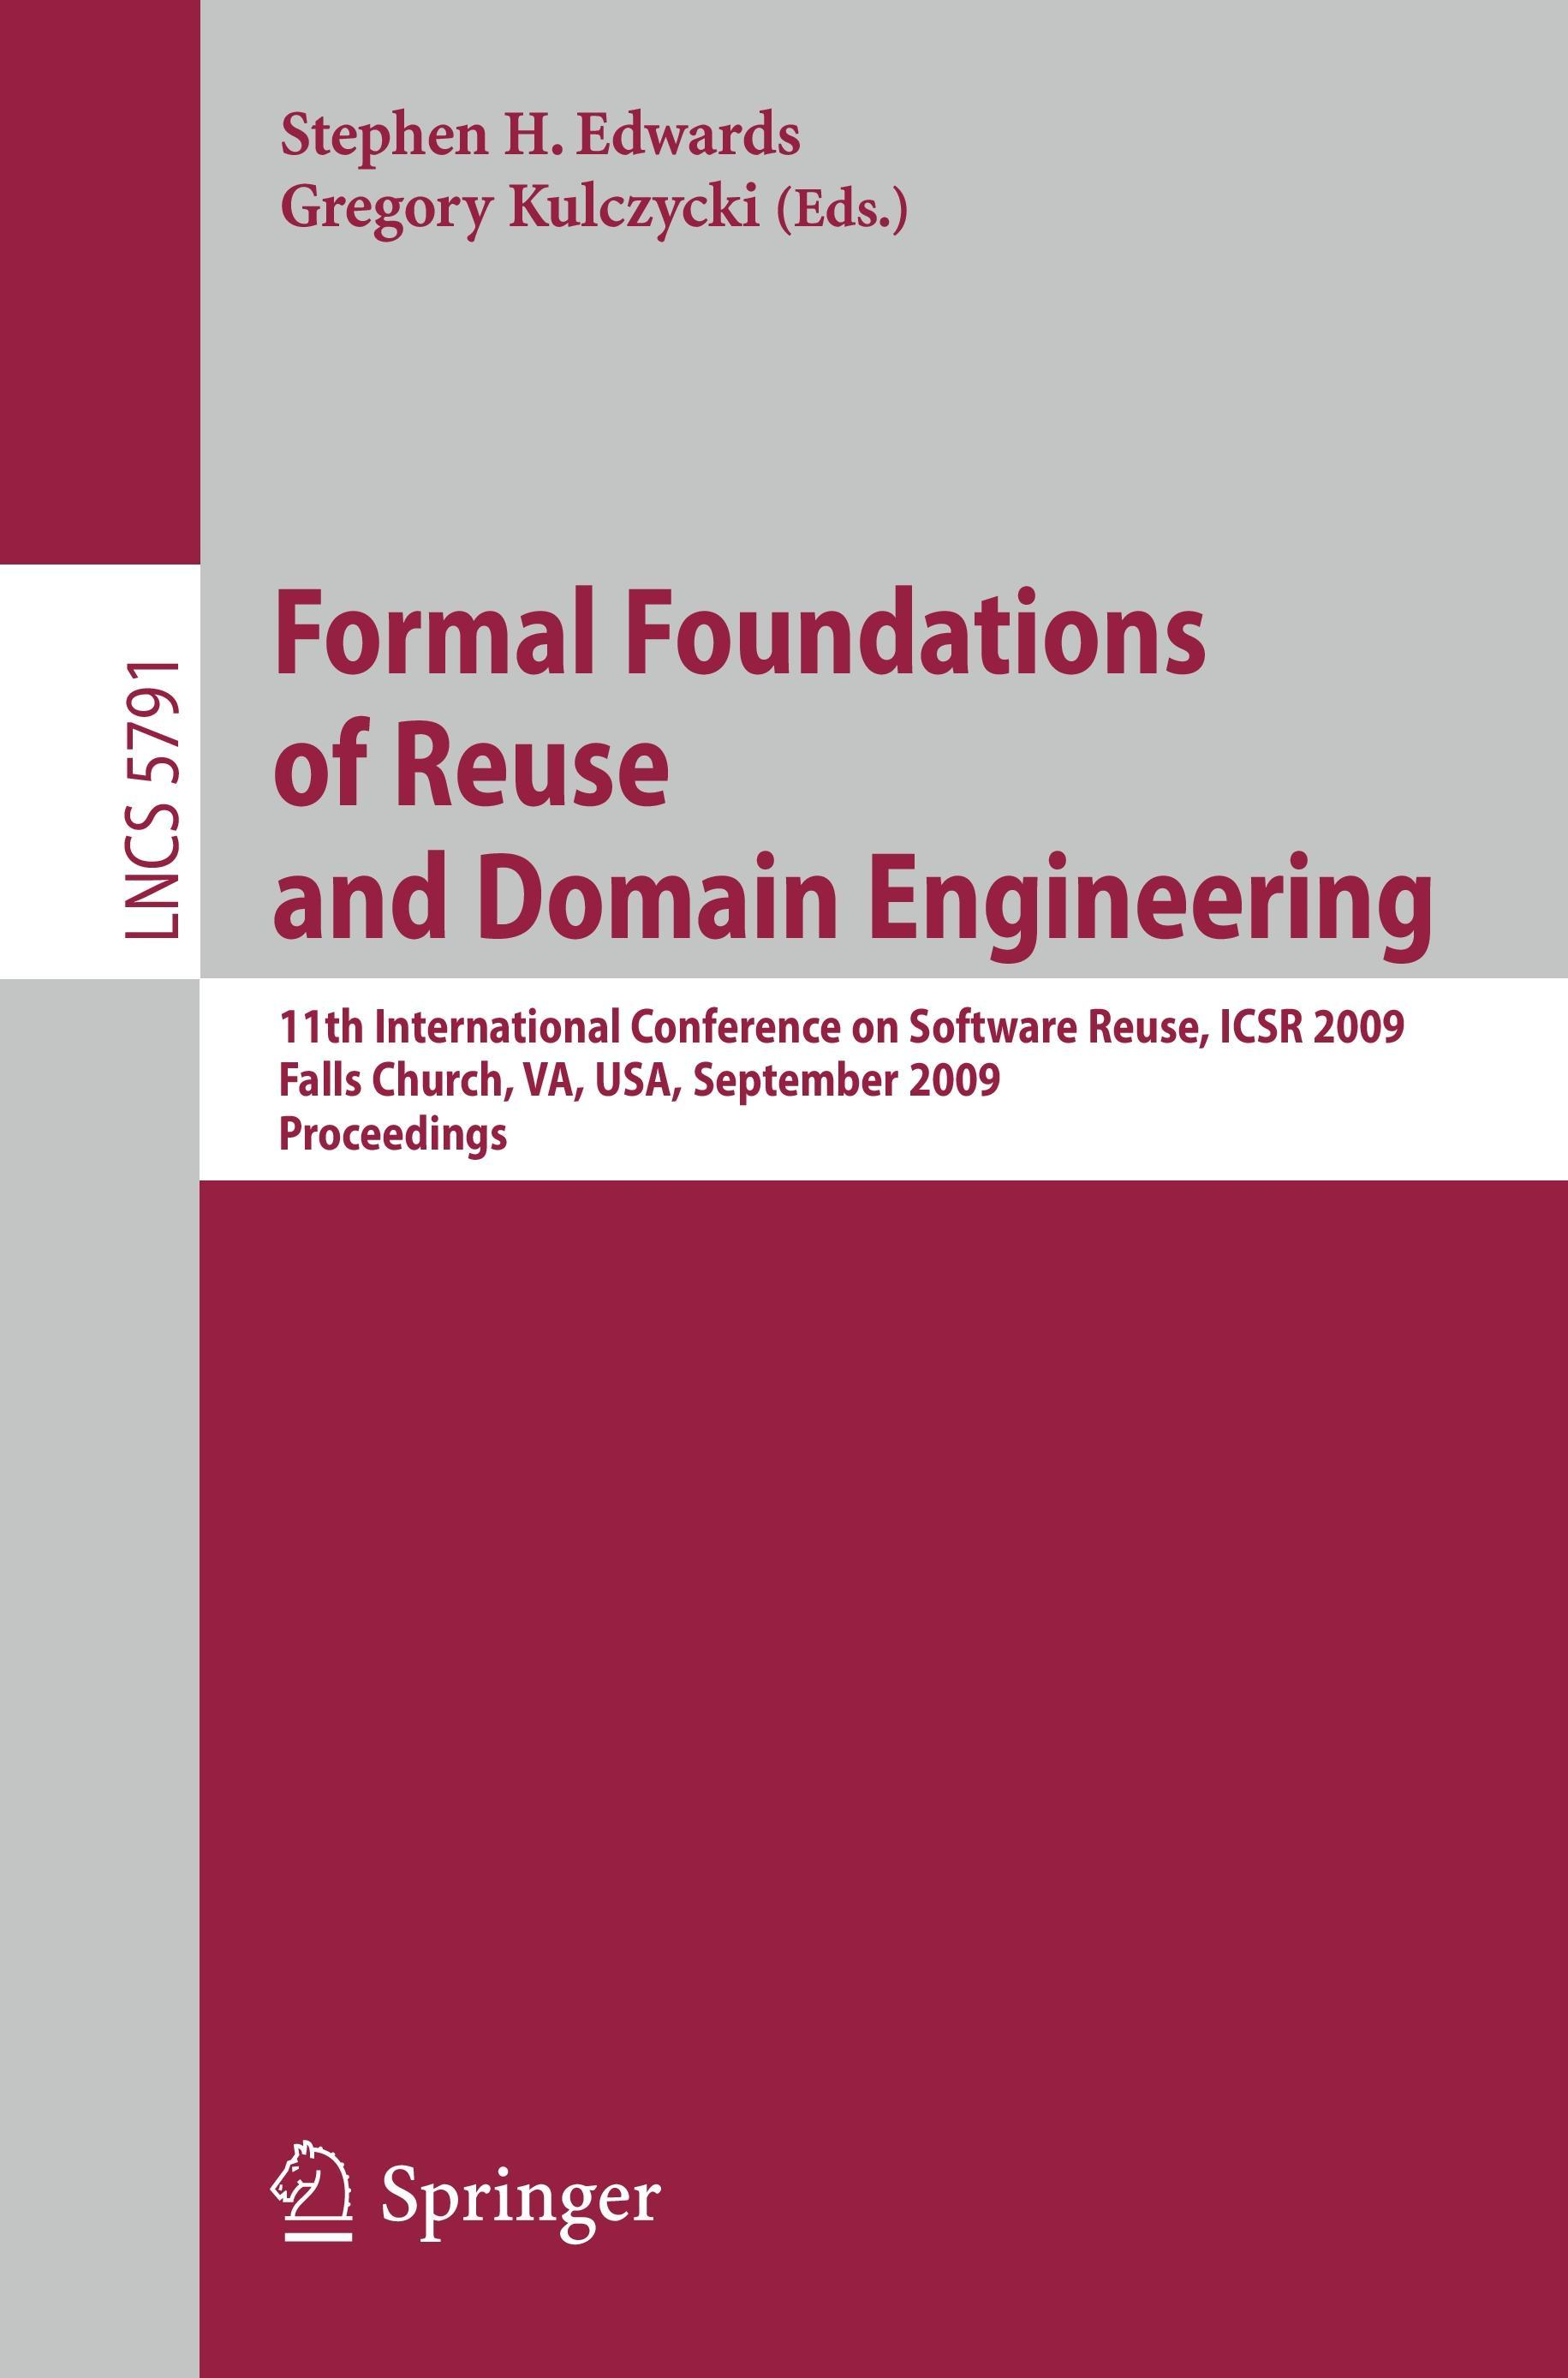 Formal Foundations of Reuse and Domain Engineering | Stephen ... 9783642042102